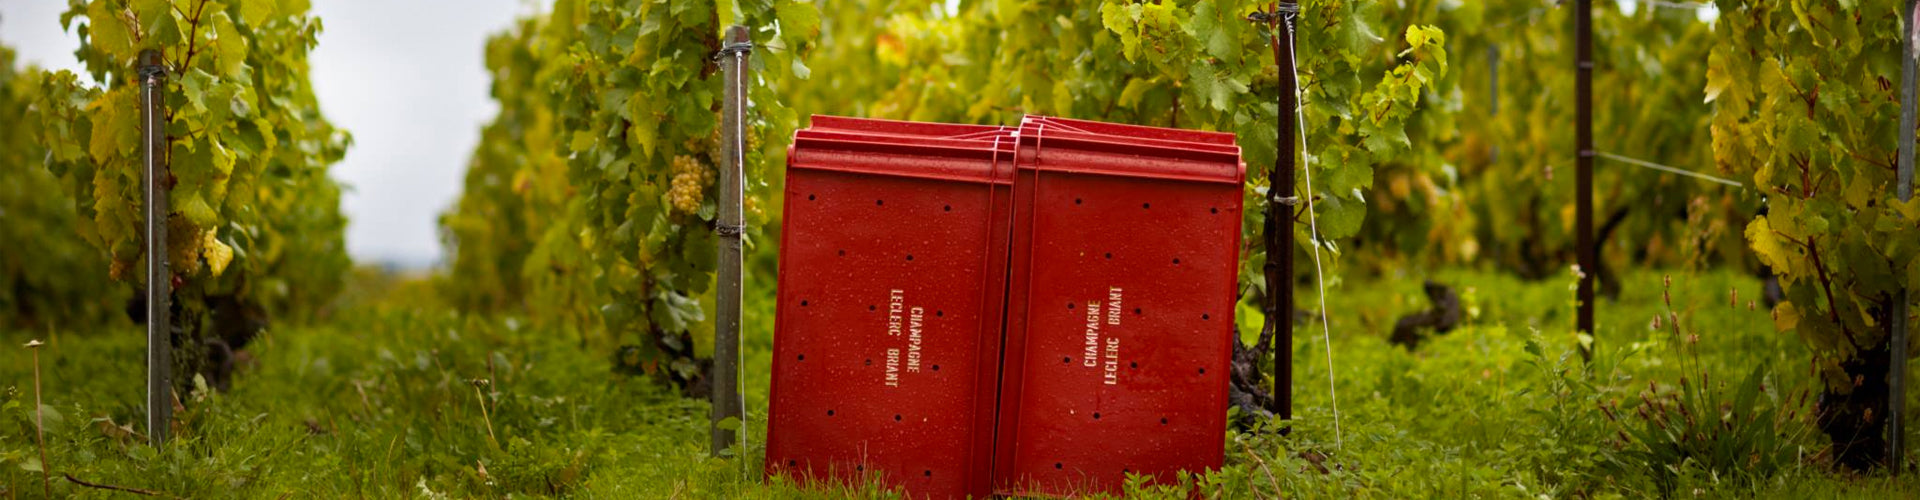 Grape picking boxes in Leclerc Briant Vineyards